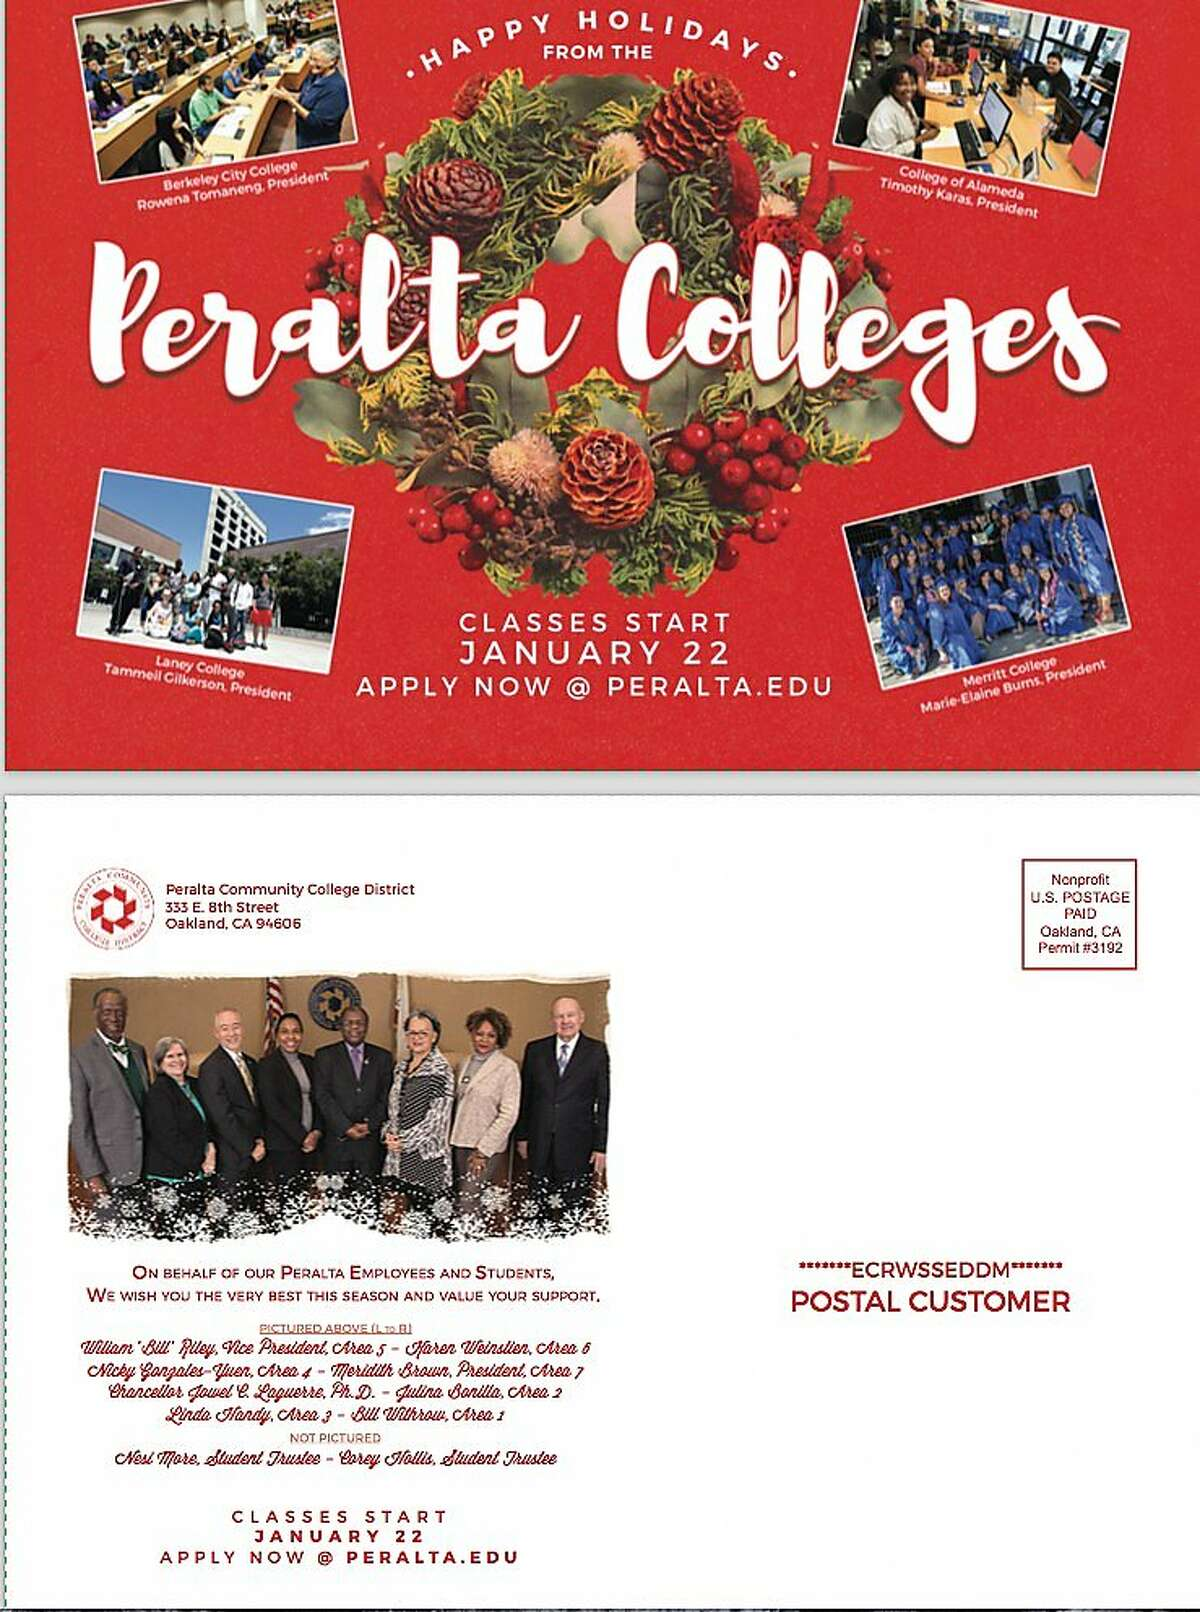 A state ethics commission fined the Peralta Community College District $2,000 for spending taxpayer money to send thousands of these holiday cards with images of the trustees and Chancellor Jowel Laguerre in 2017.